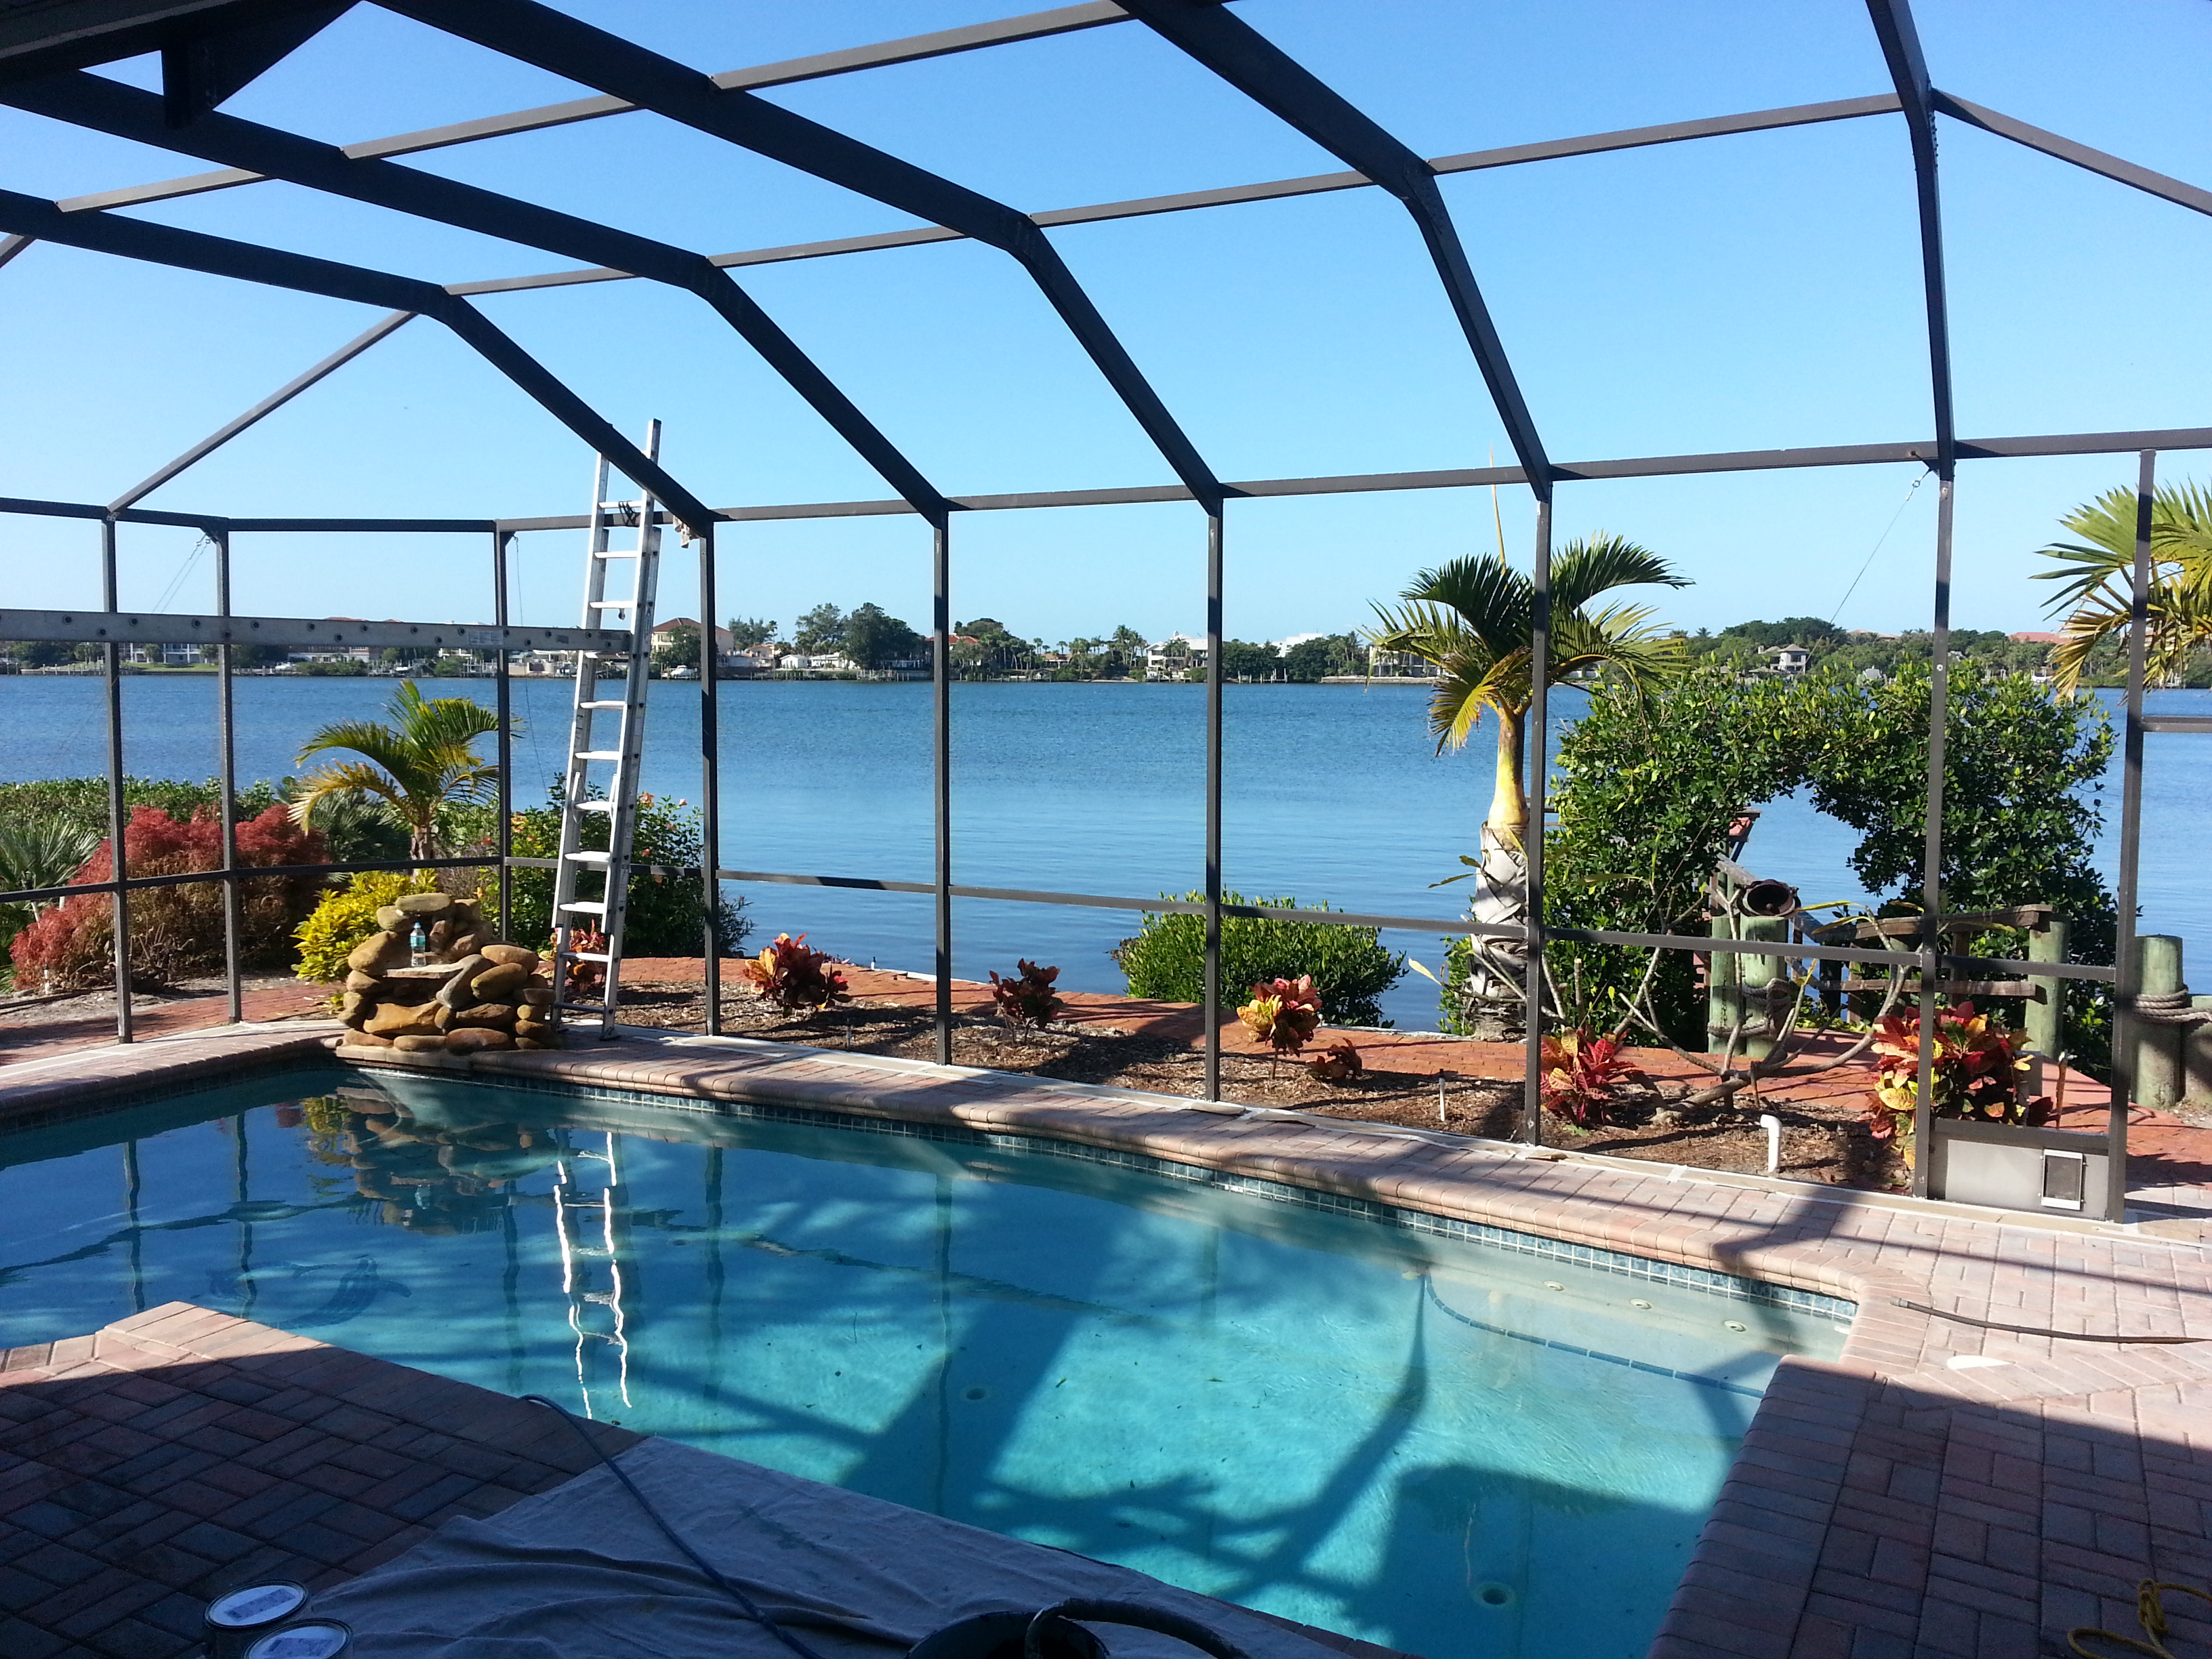 Pool cage painters expanding into tampa st pete jpm for Pool design tampa